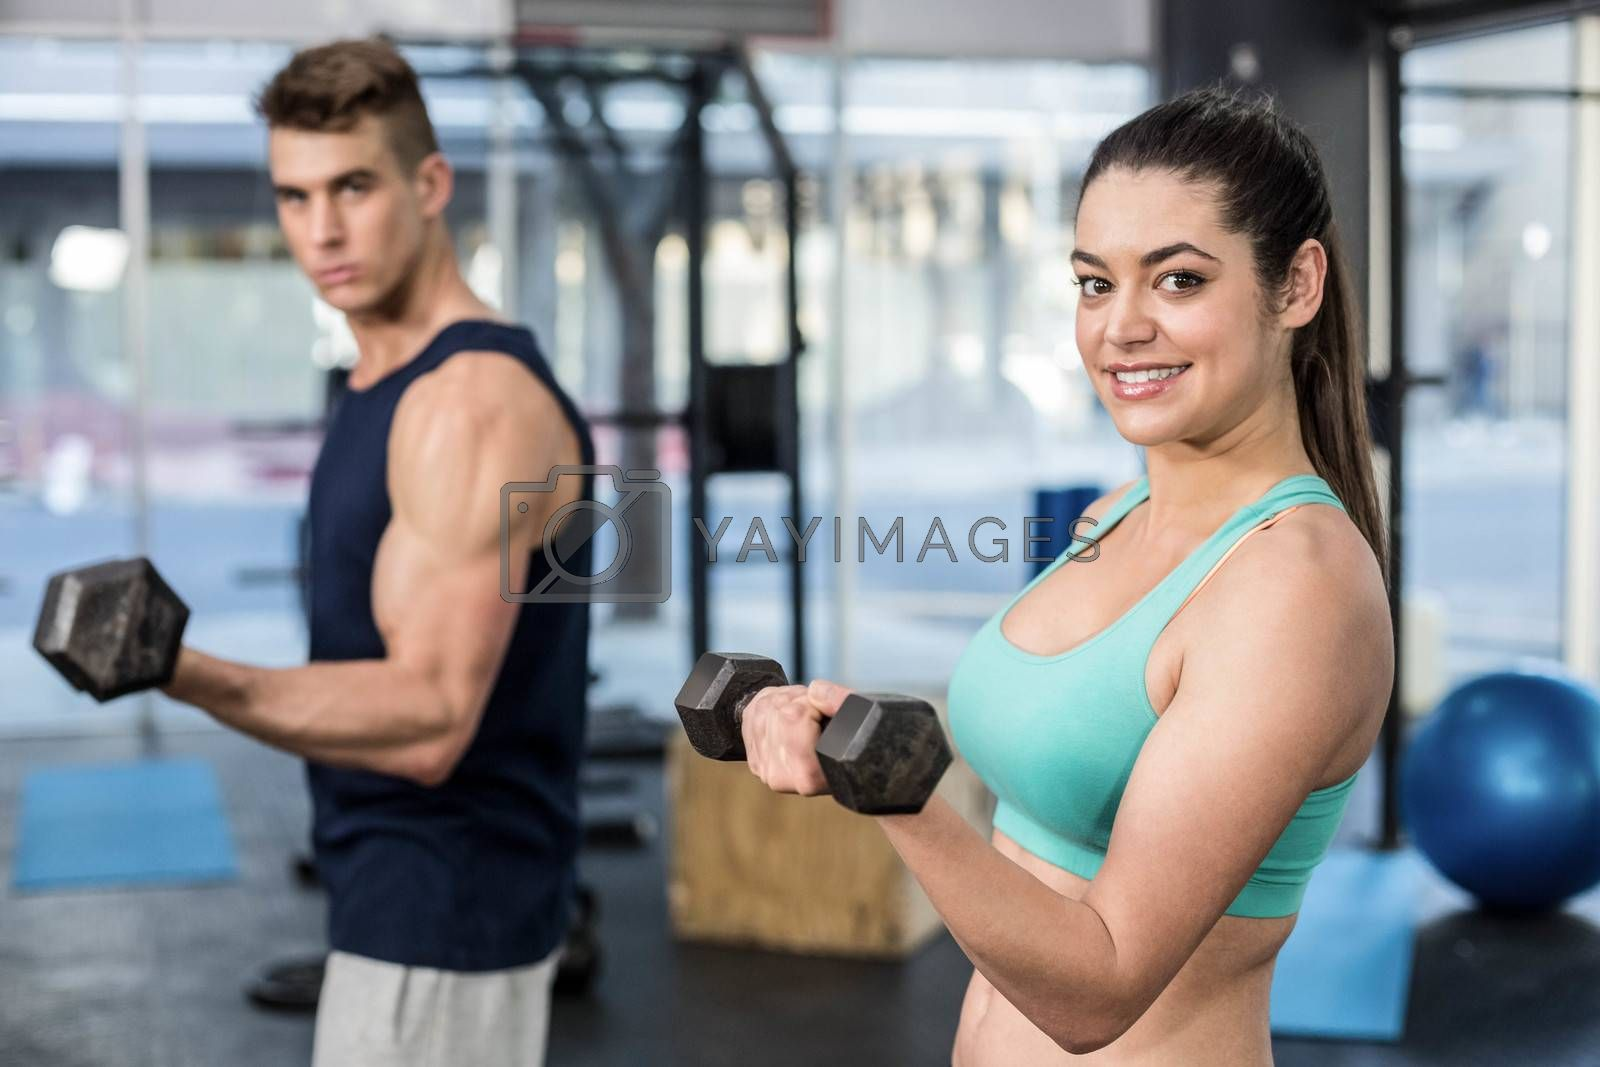 Fit people lifting dumbbells at gym